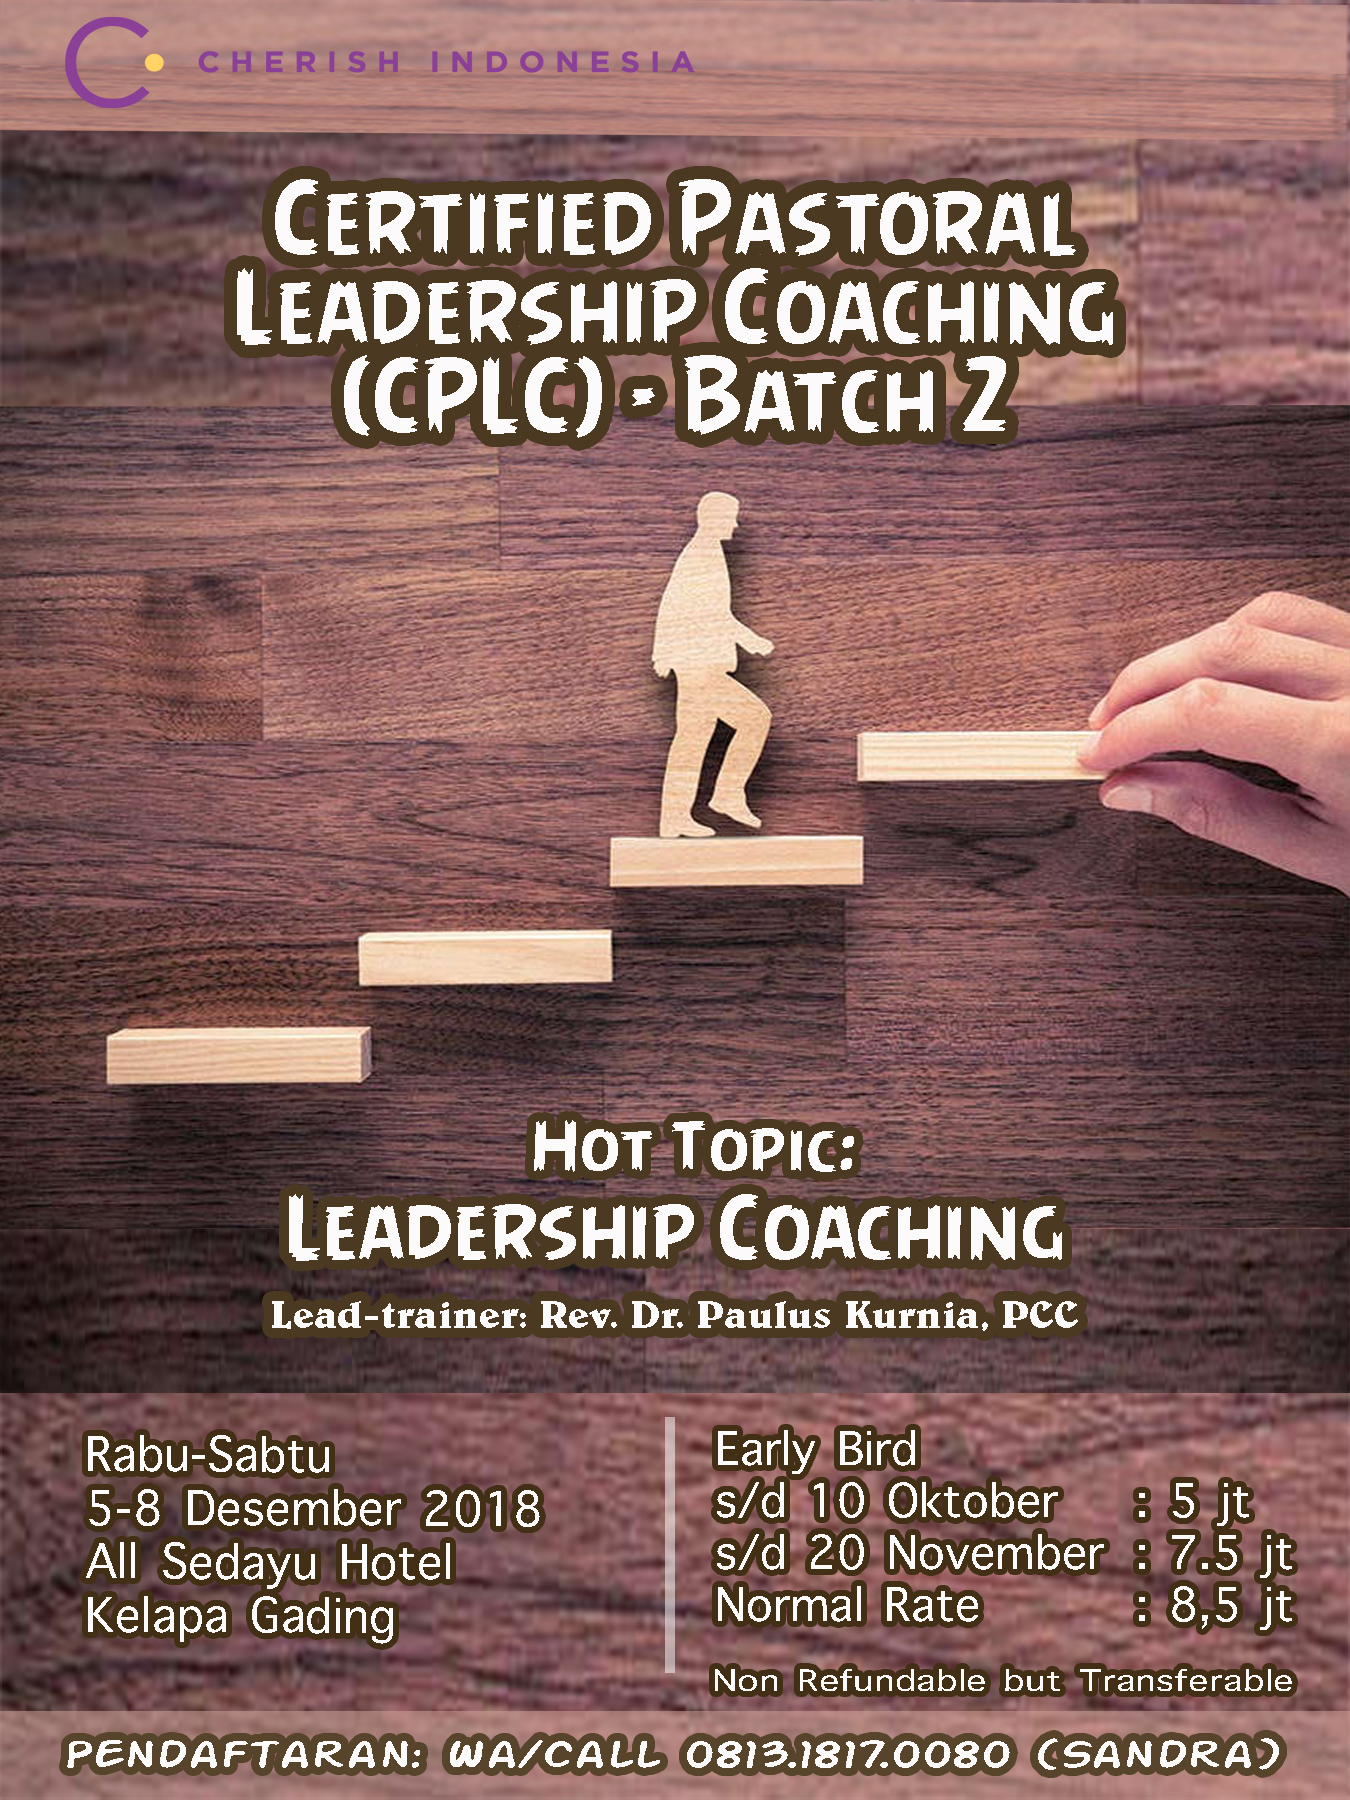 Certified Pastoral Leadership Coaching Batch 2